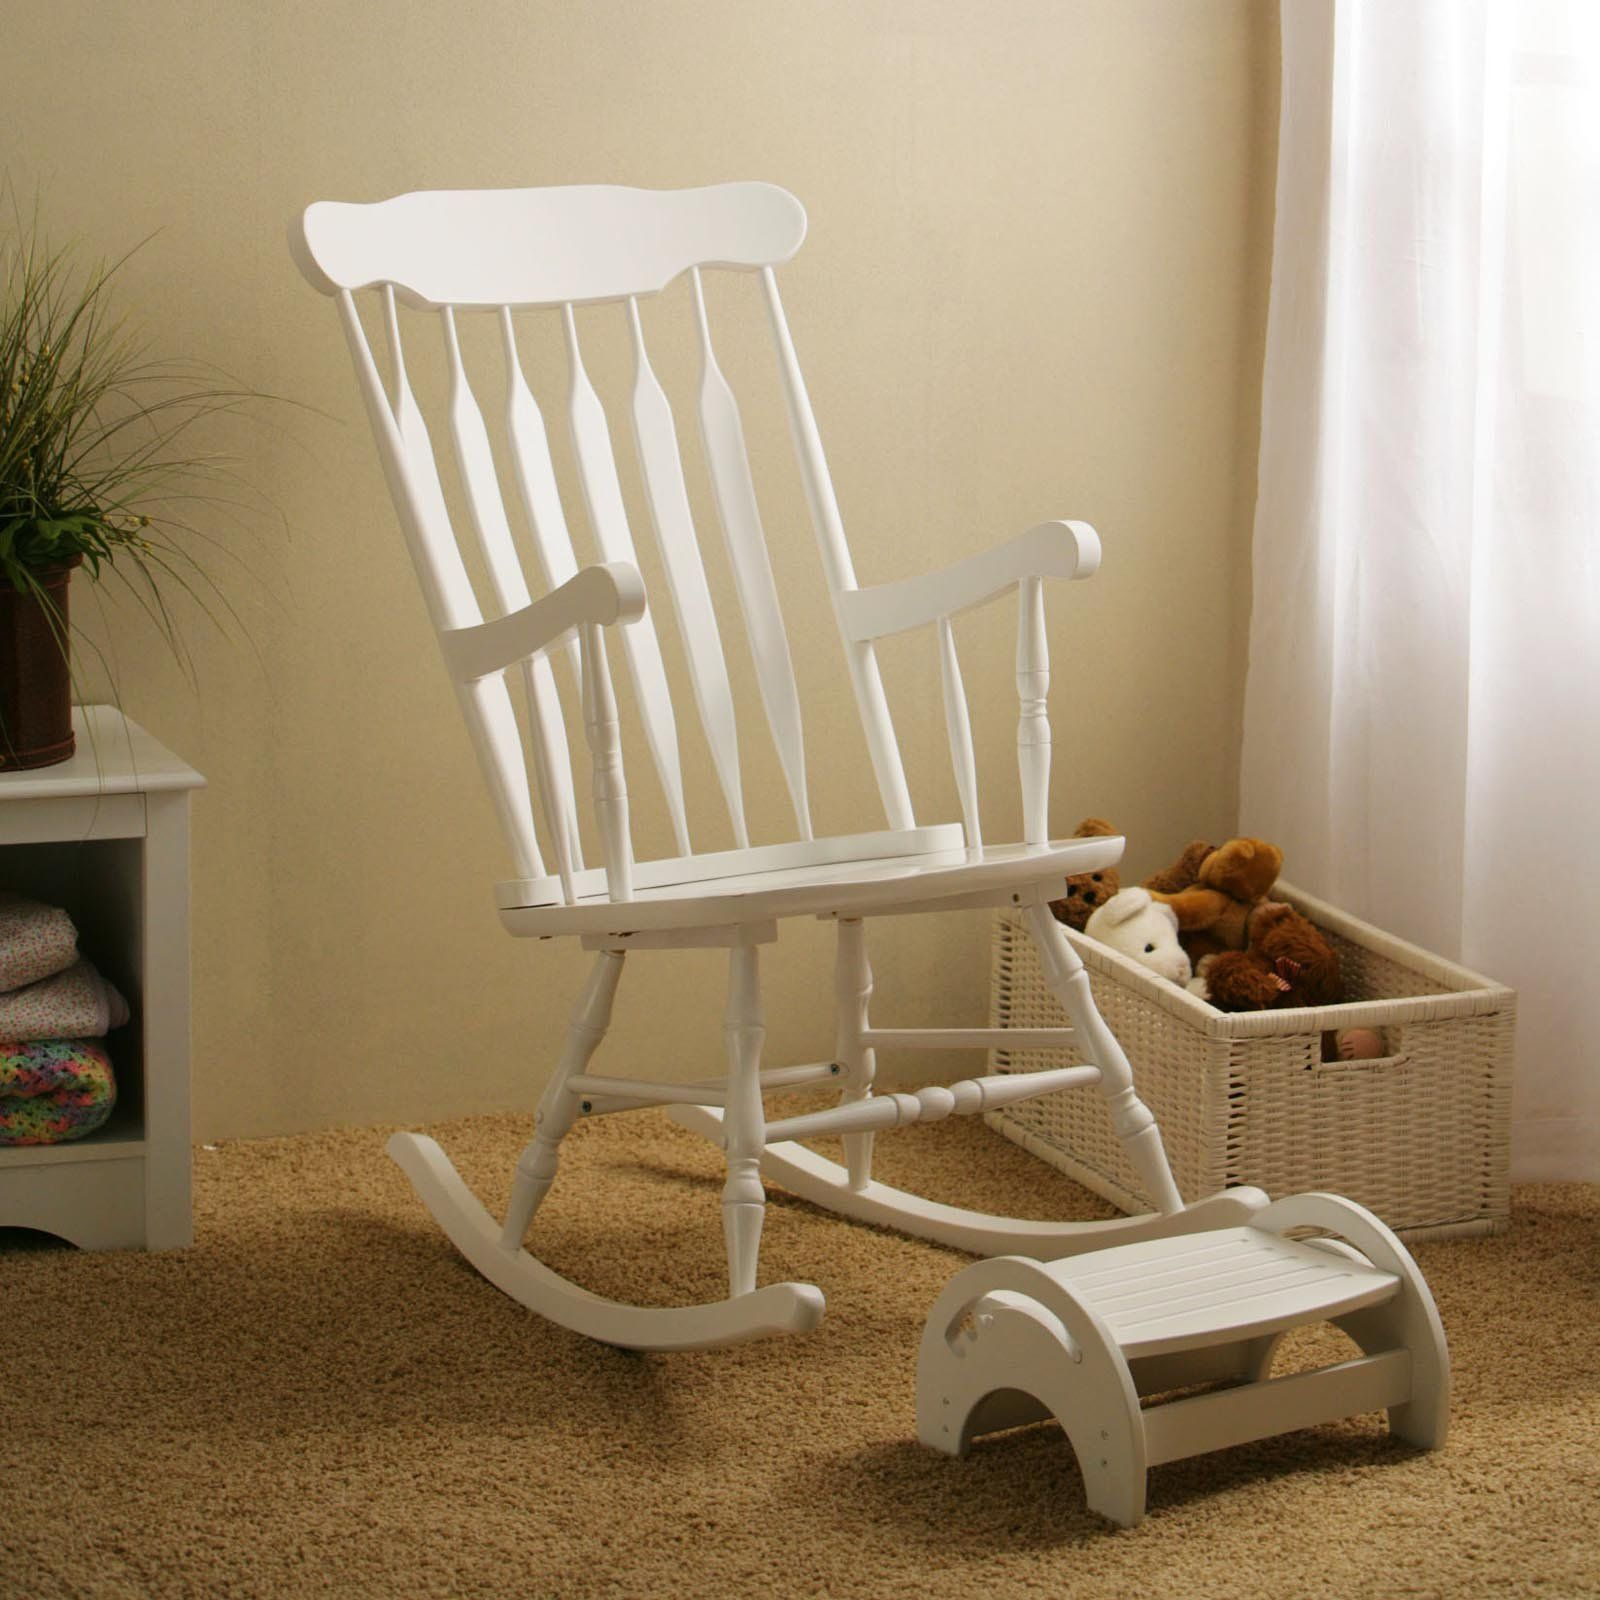 Rocking a newborn baby to sleep in a comfy nursery chair is a great way to bond with your new love while wooden rocking chairs are perfect for watching ... : comfy nursery chairs - Cheerinfomania.Com